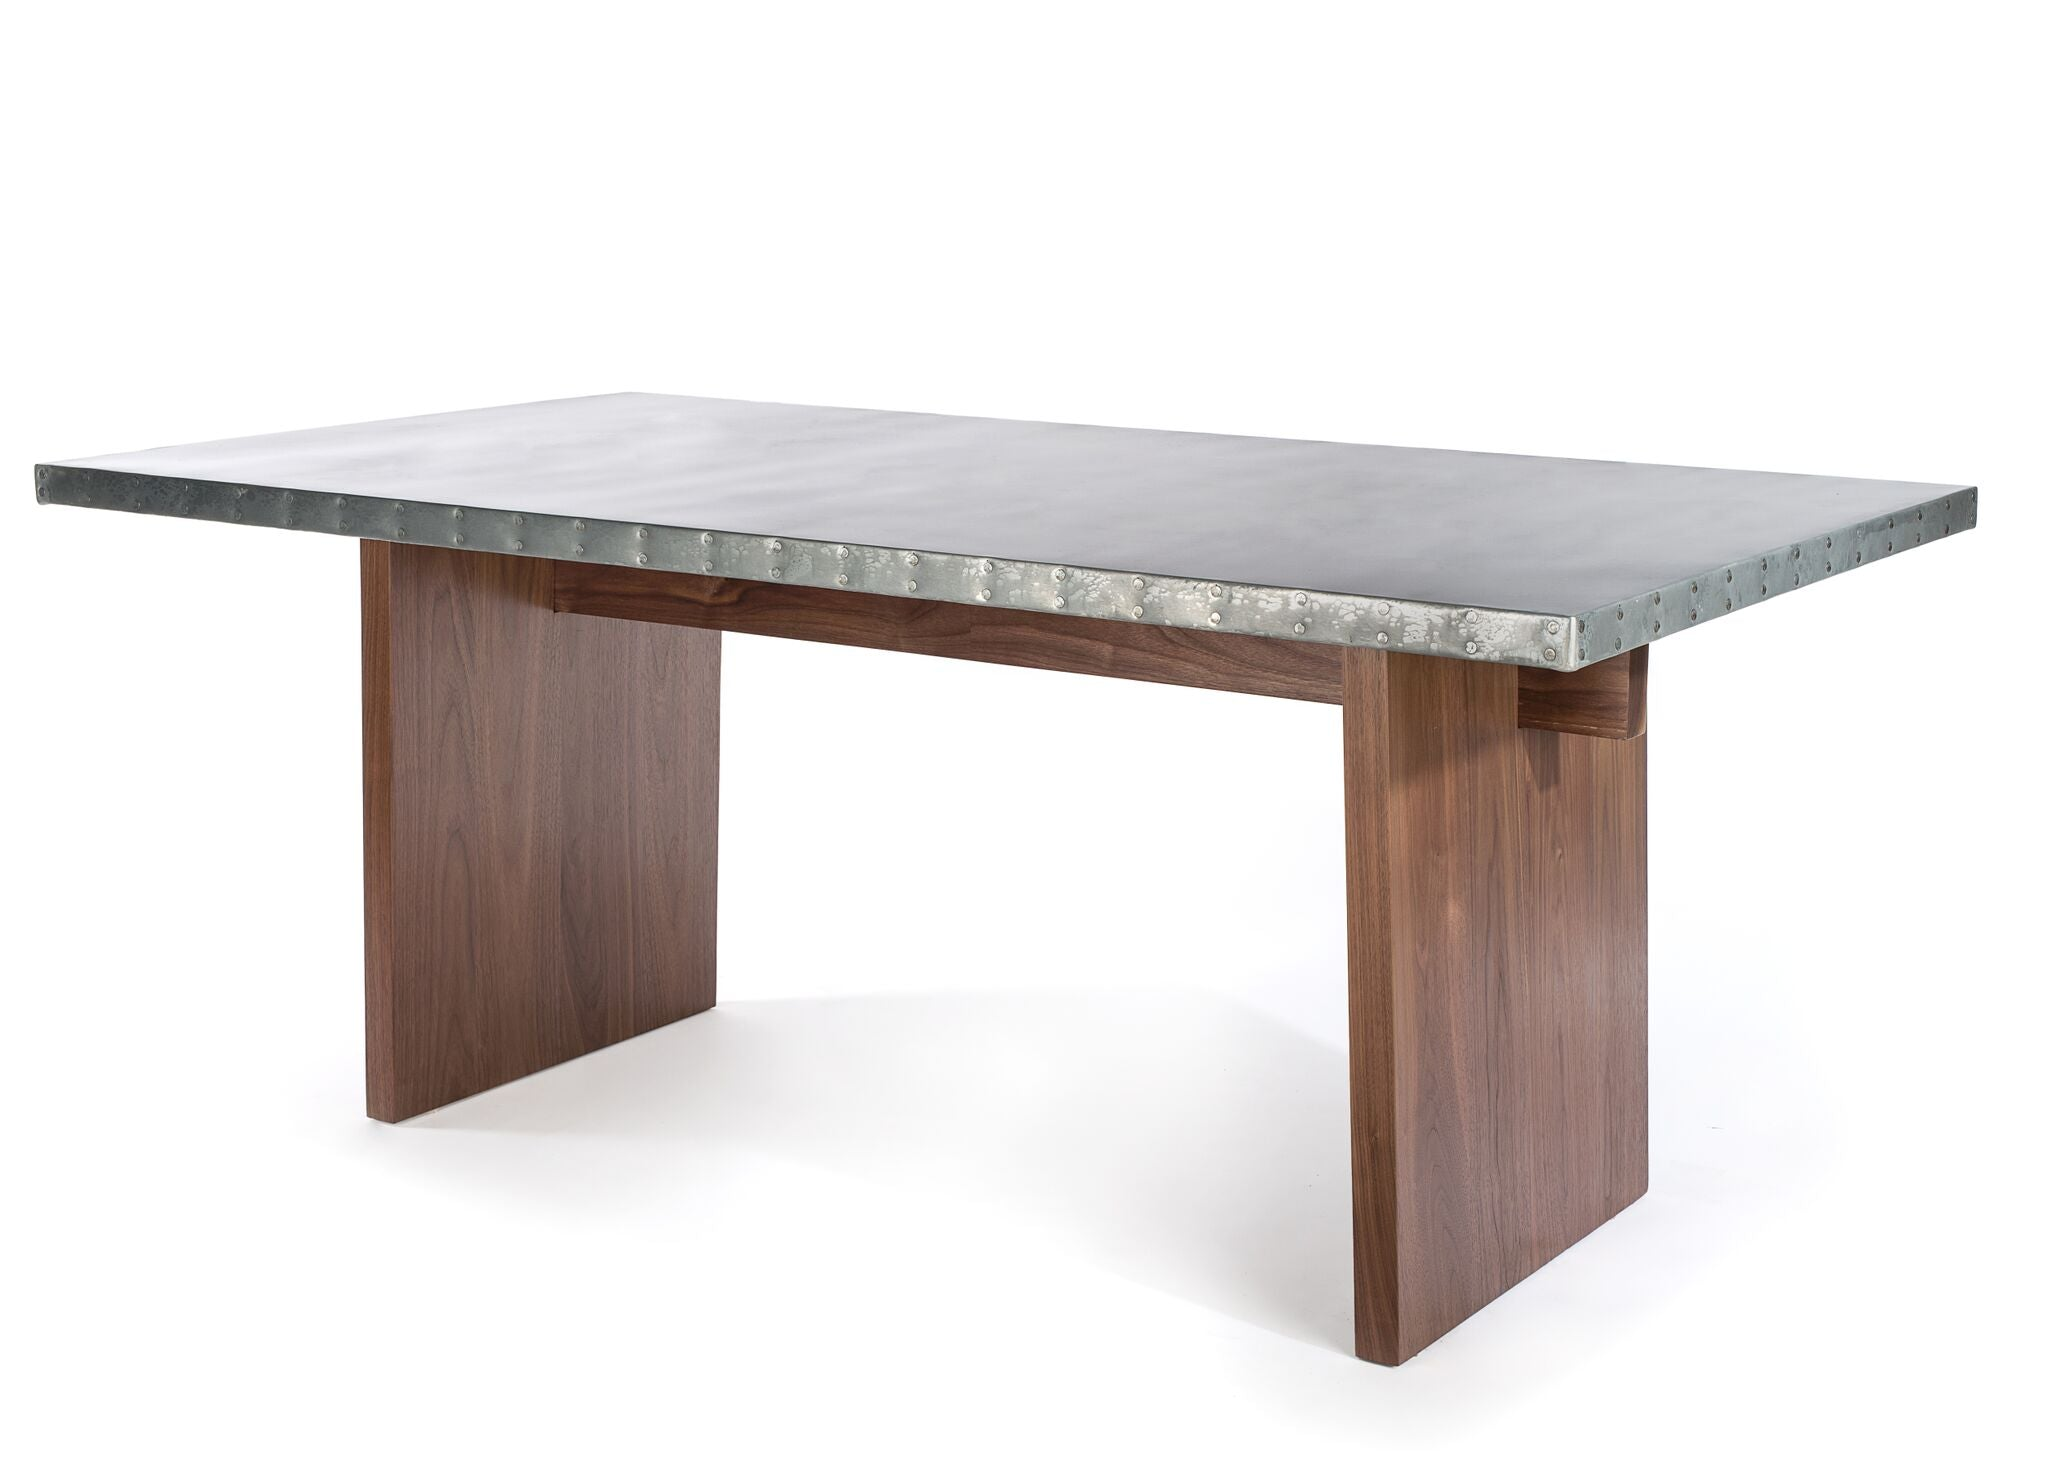 Sonoma Trestle Table kingston-krafts-zinc-tables.